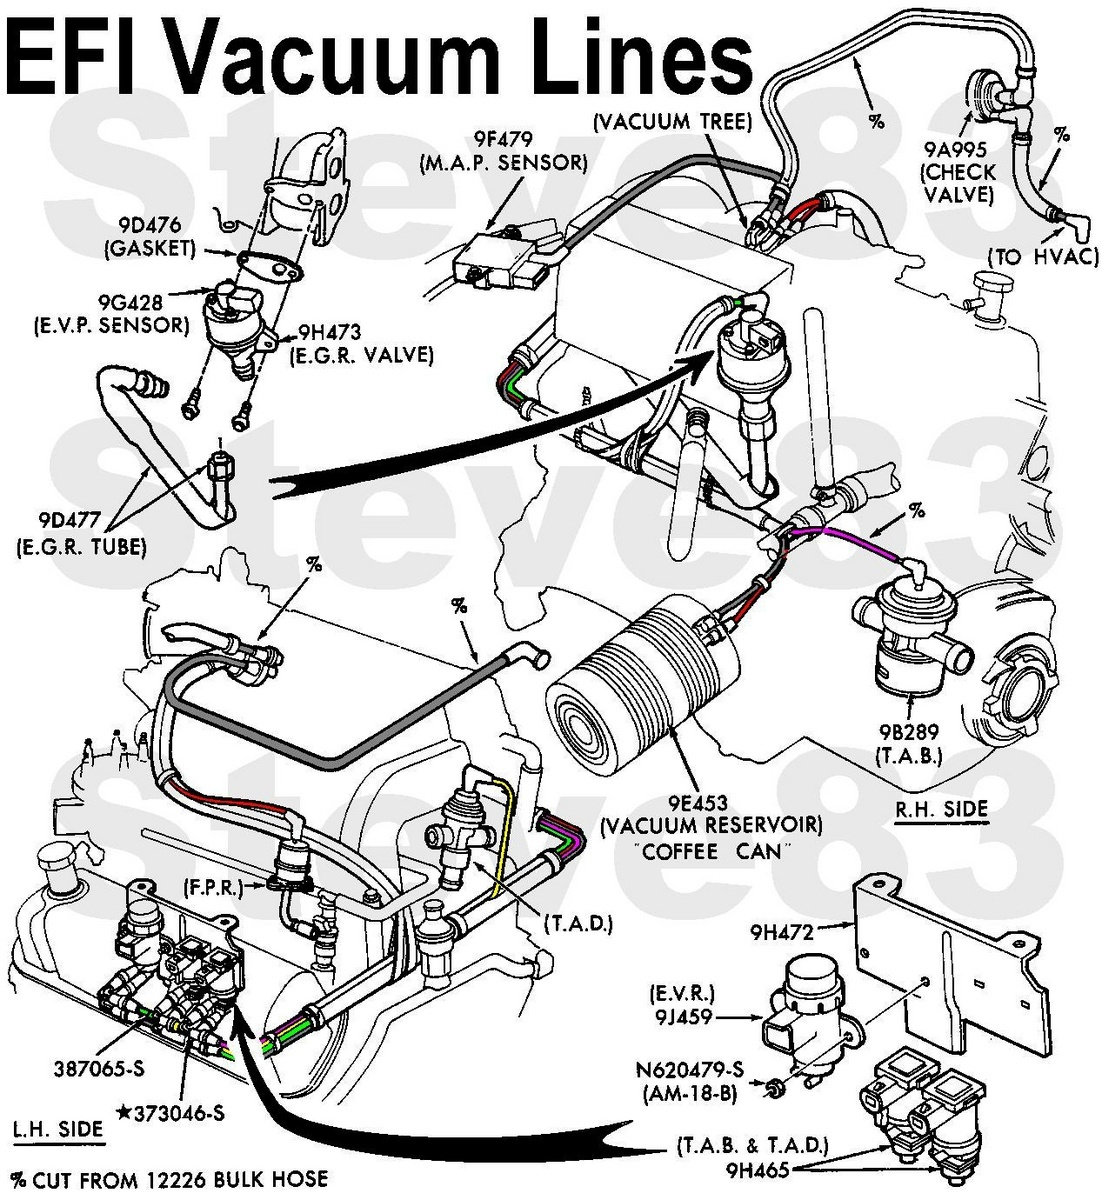 wiring diagram for 2000 mercury 90 hp with 1990 Ford F 150 Engine Diagram on 1361889 Vacuum Line R R On 1988 F150 302 5 0l likewise 7 5 Mercury Outboard Diagrams further Bilge Pump Auto Switch as well 2000 Johnson Wiring Diagram moreover Fuse Box Diagram For 2006 Ford Fusion.